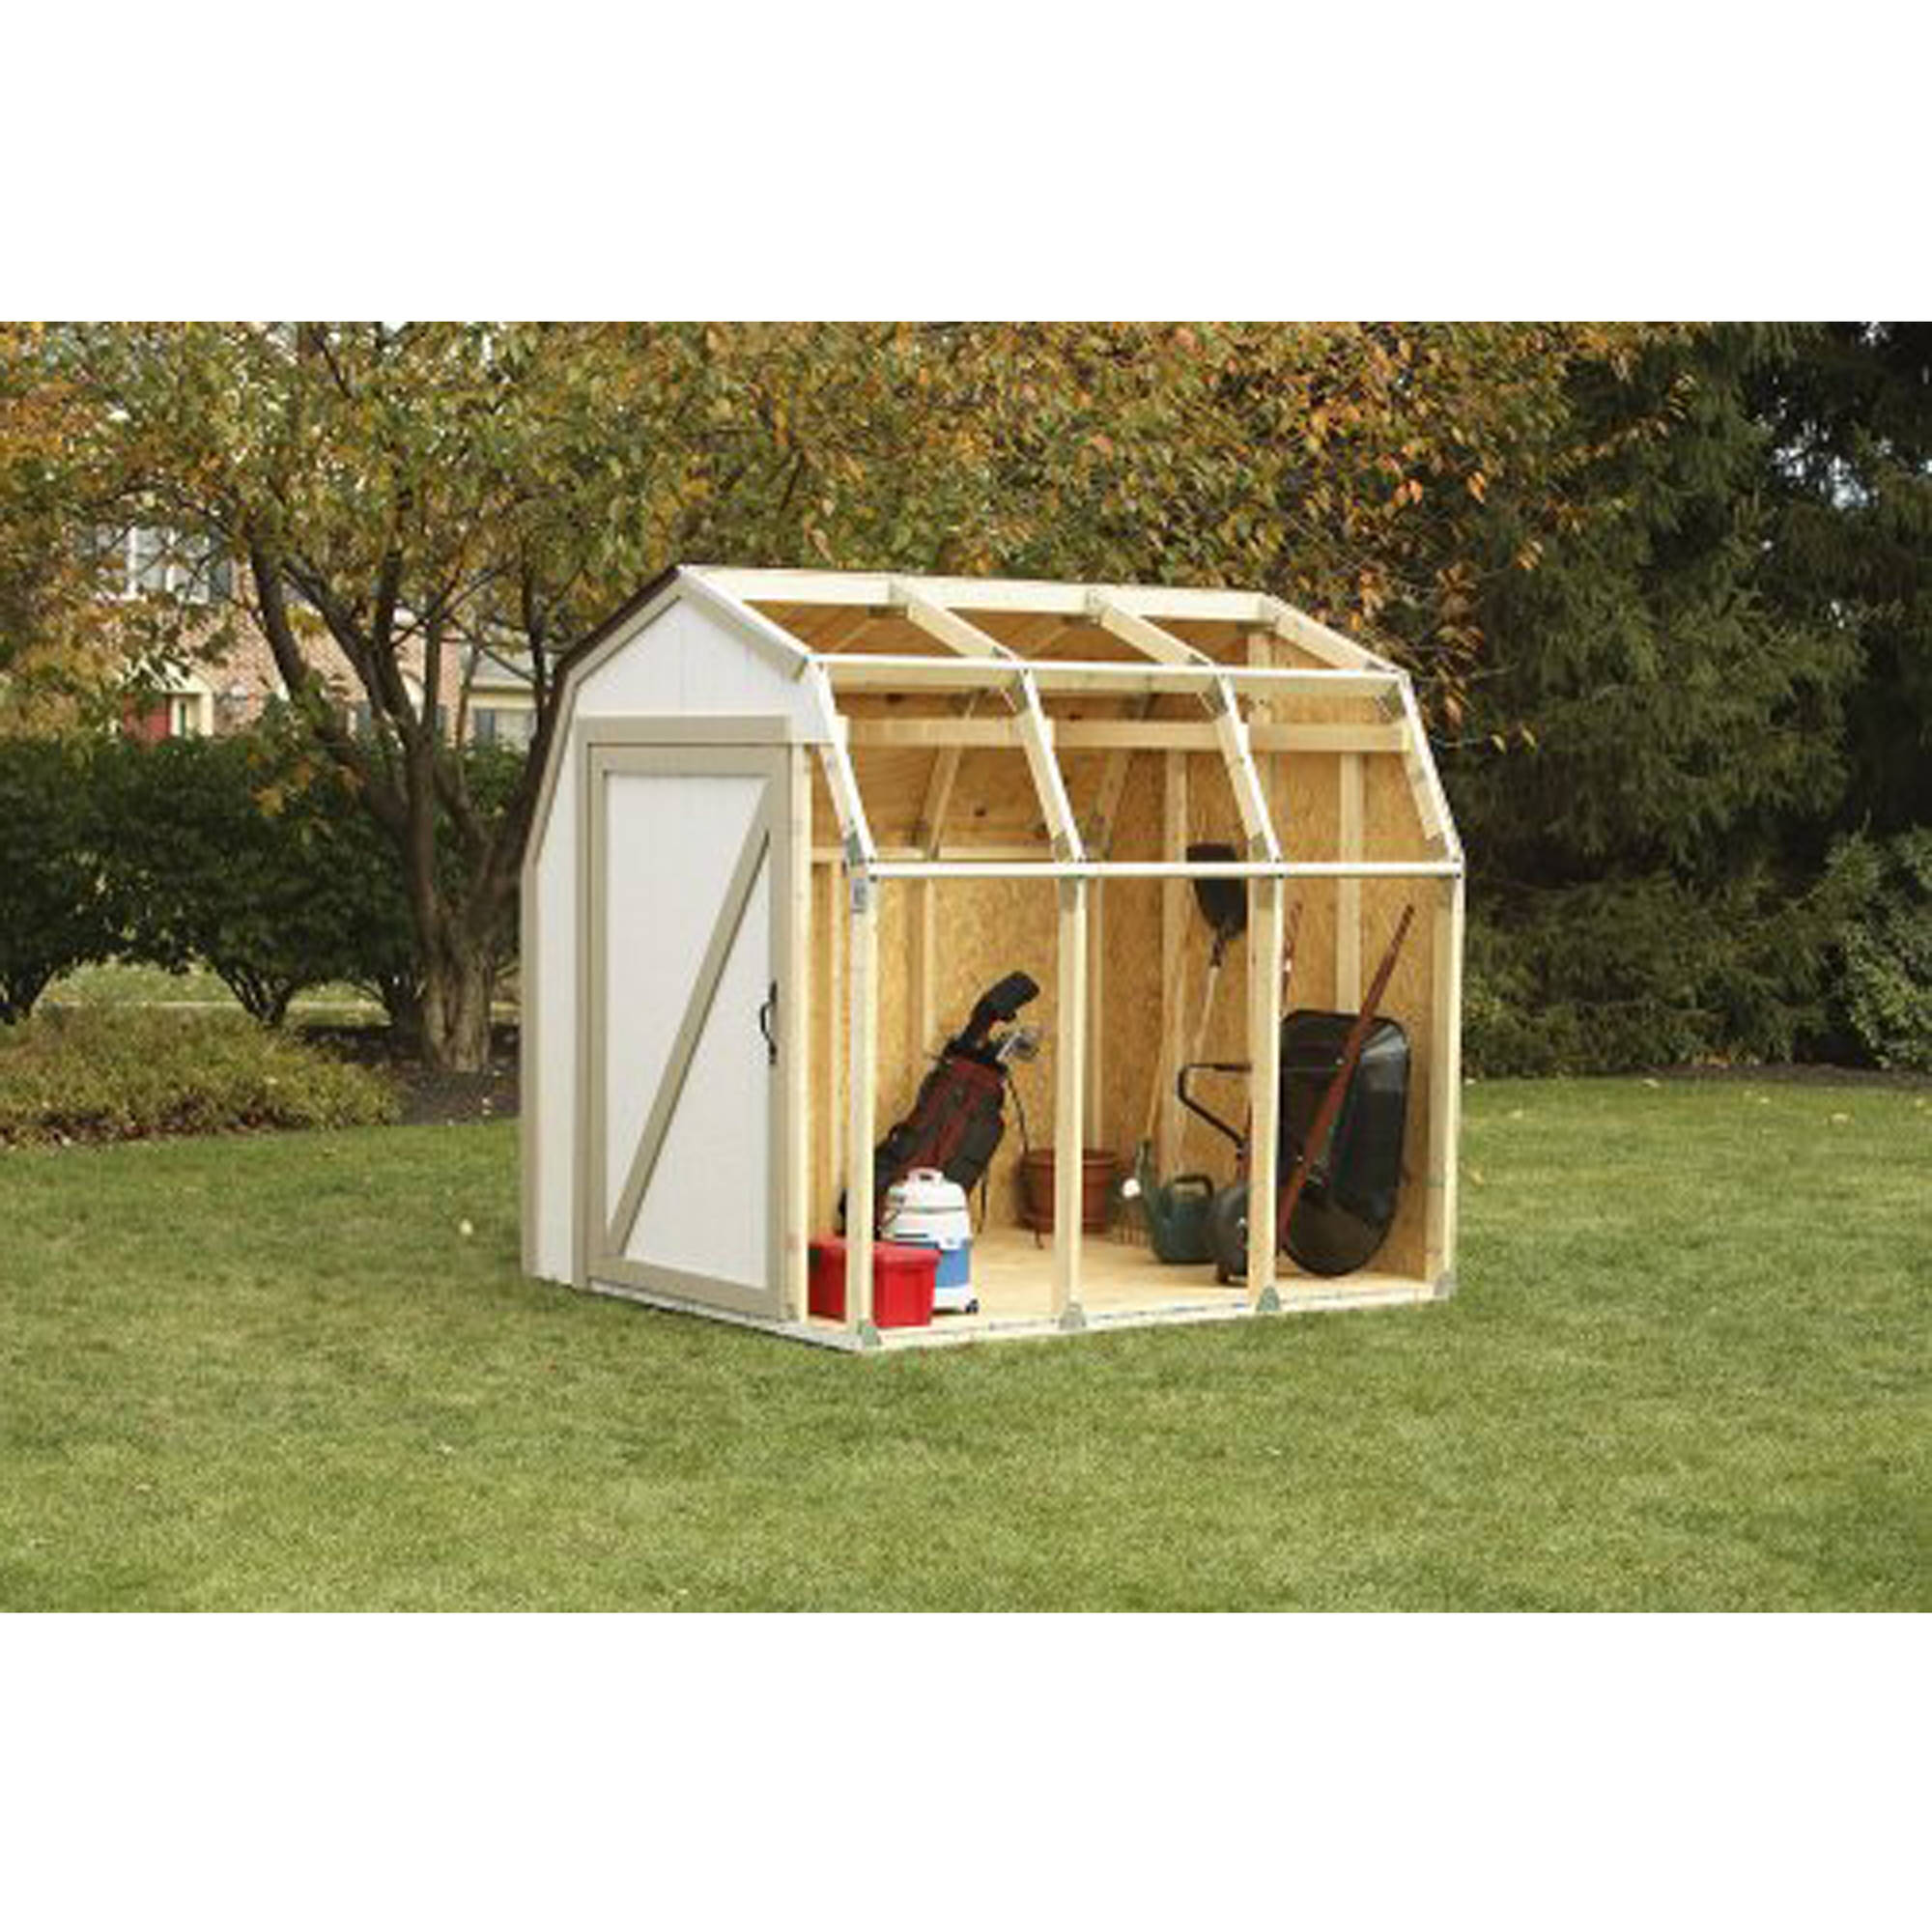 metal framed storage shed steel building prices home kits budget cost estimator versatube garage 2×4 basics kit with barn style ro